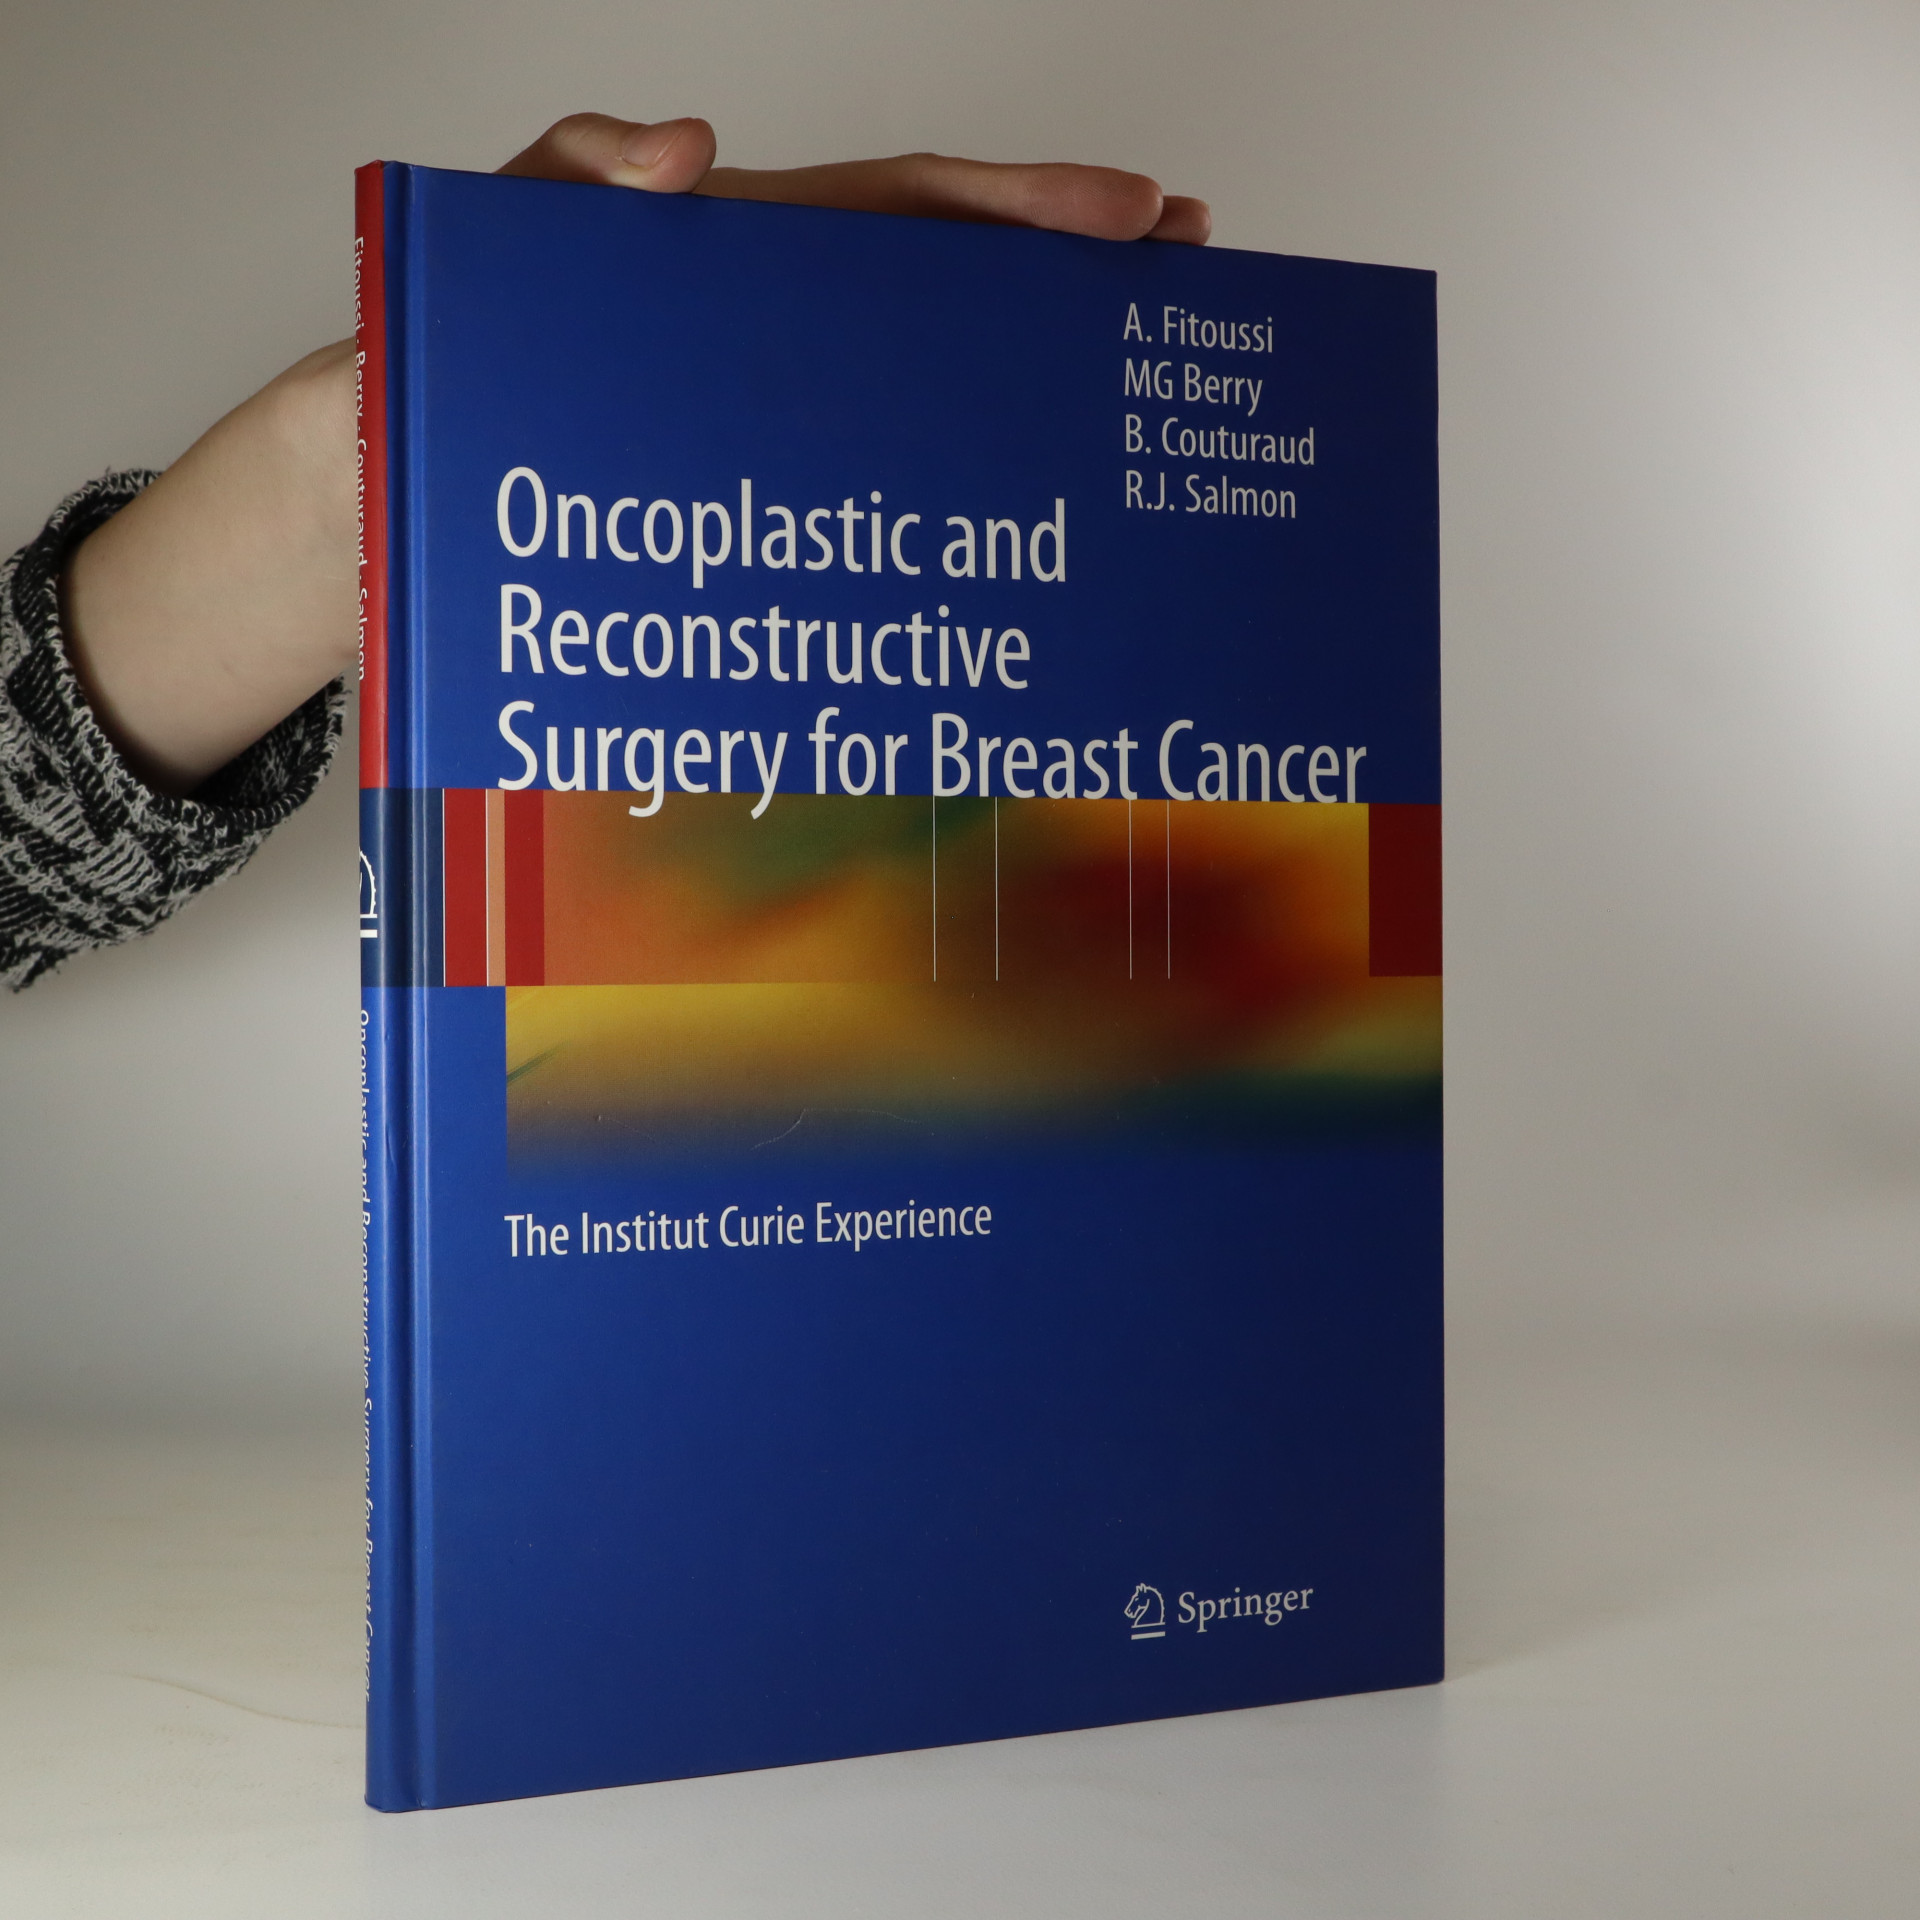 antikvární kniha Oncoplastic and Reconstructive Surgery for Breast Cancer, 2009